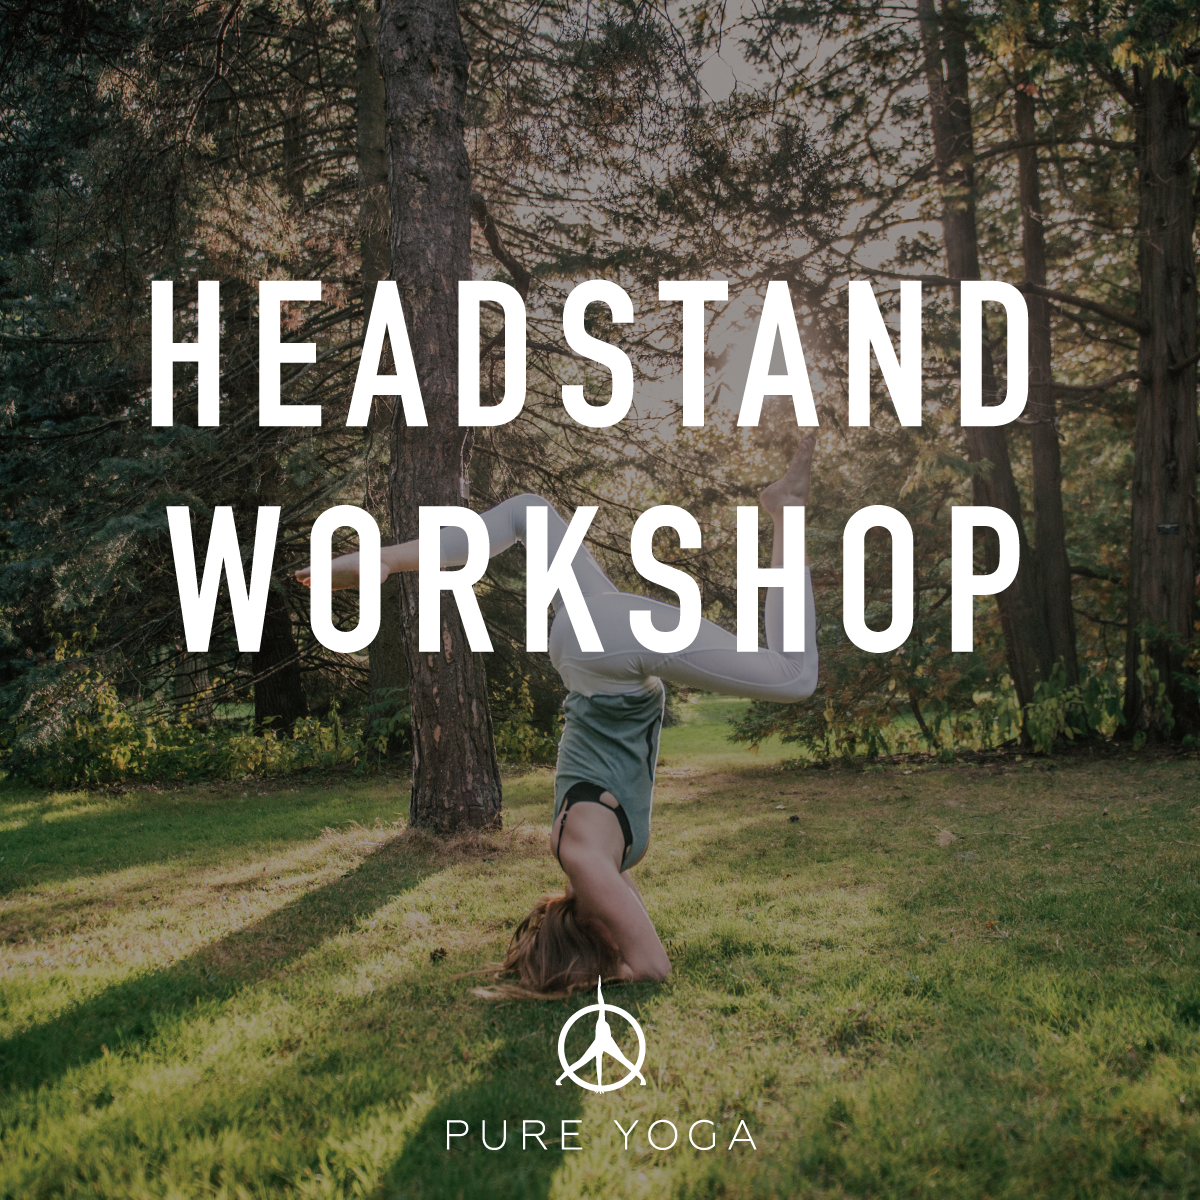 Headstand workshop square